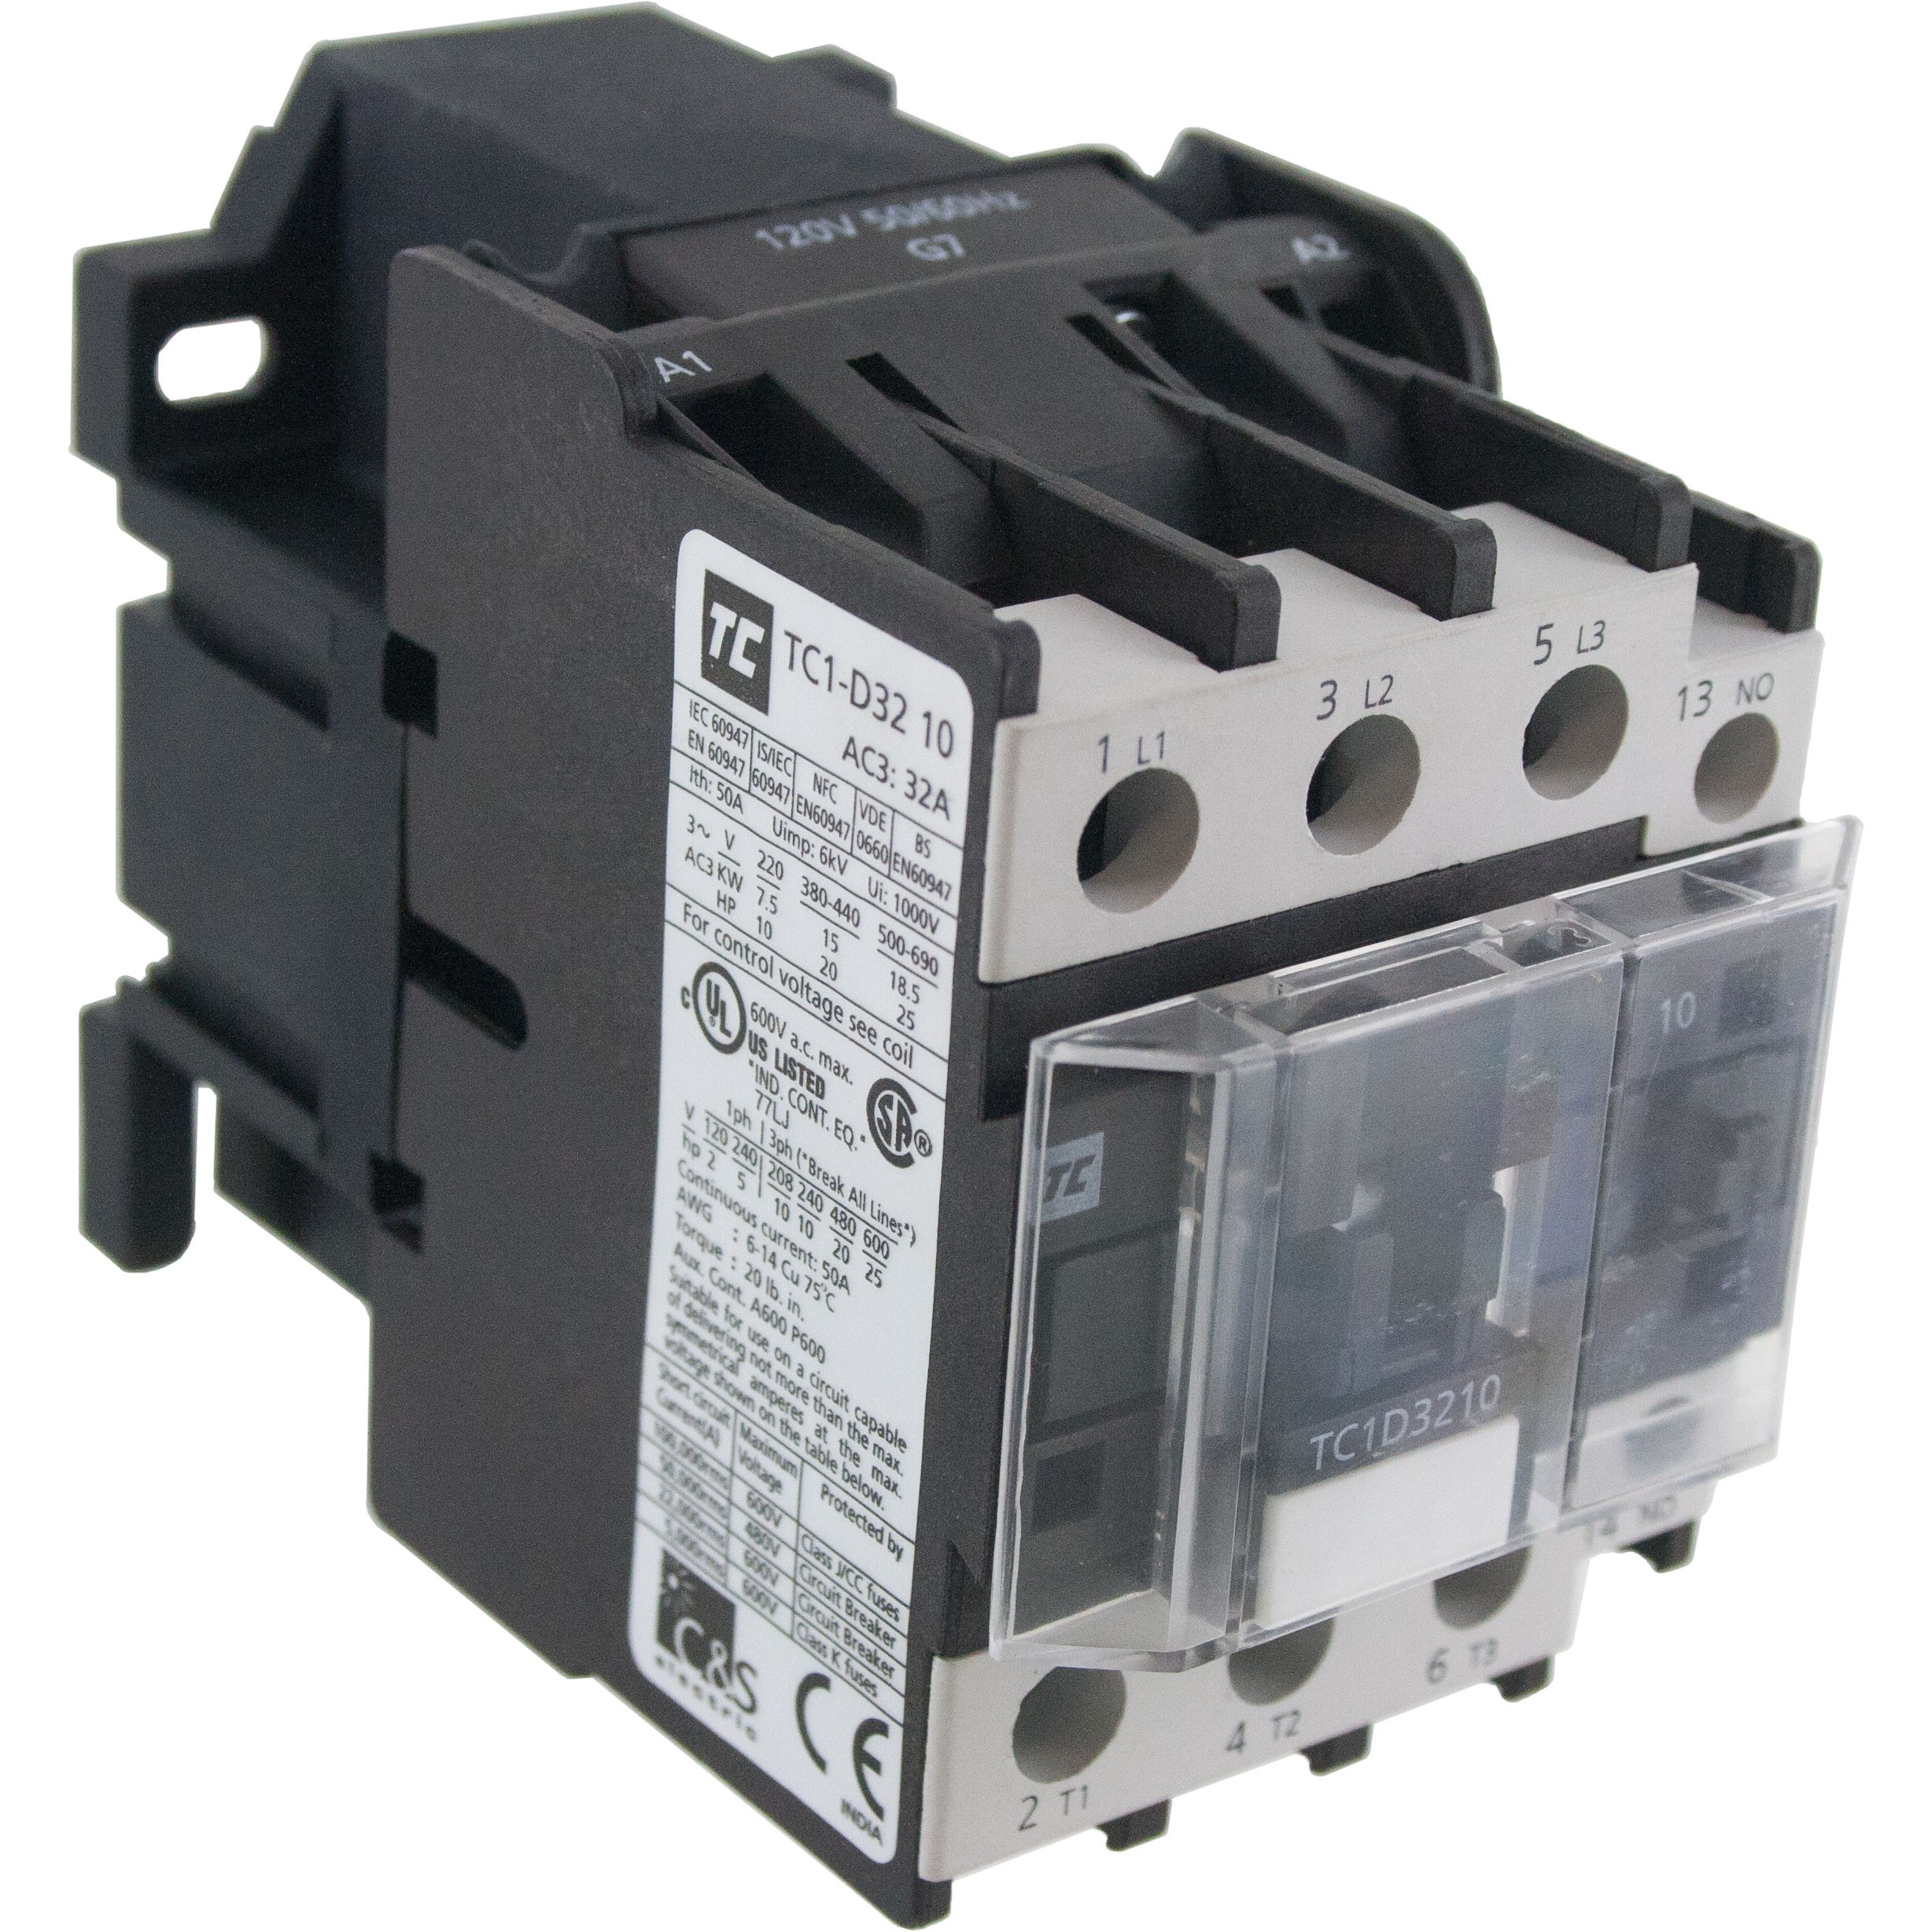 3 Pole Contactor 32 Amp 440 Volt AC Coil Angle